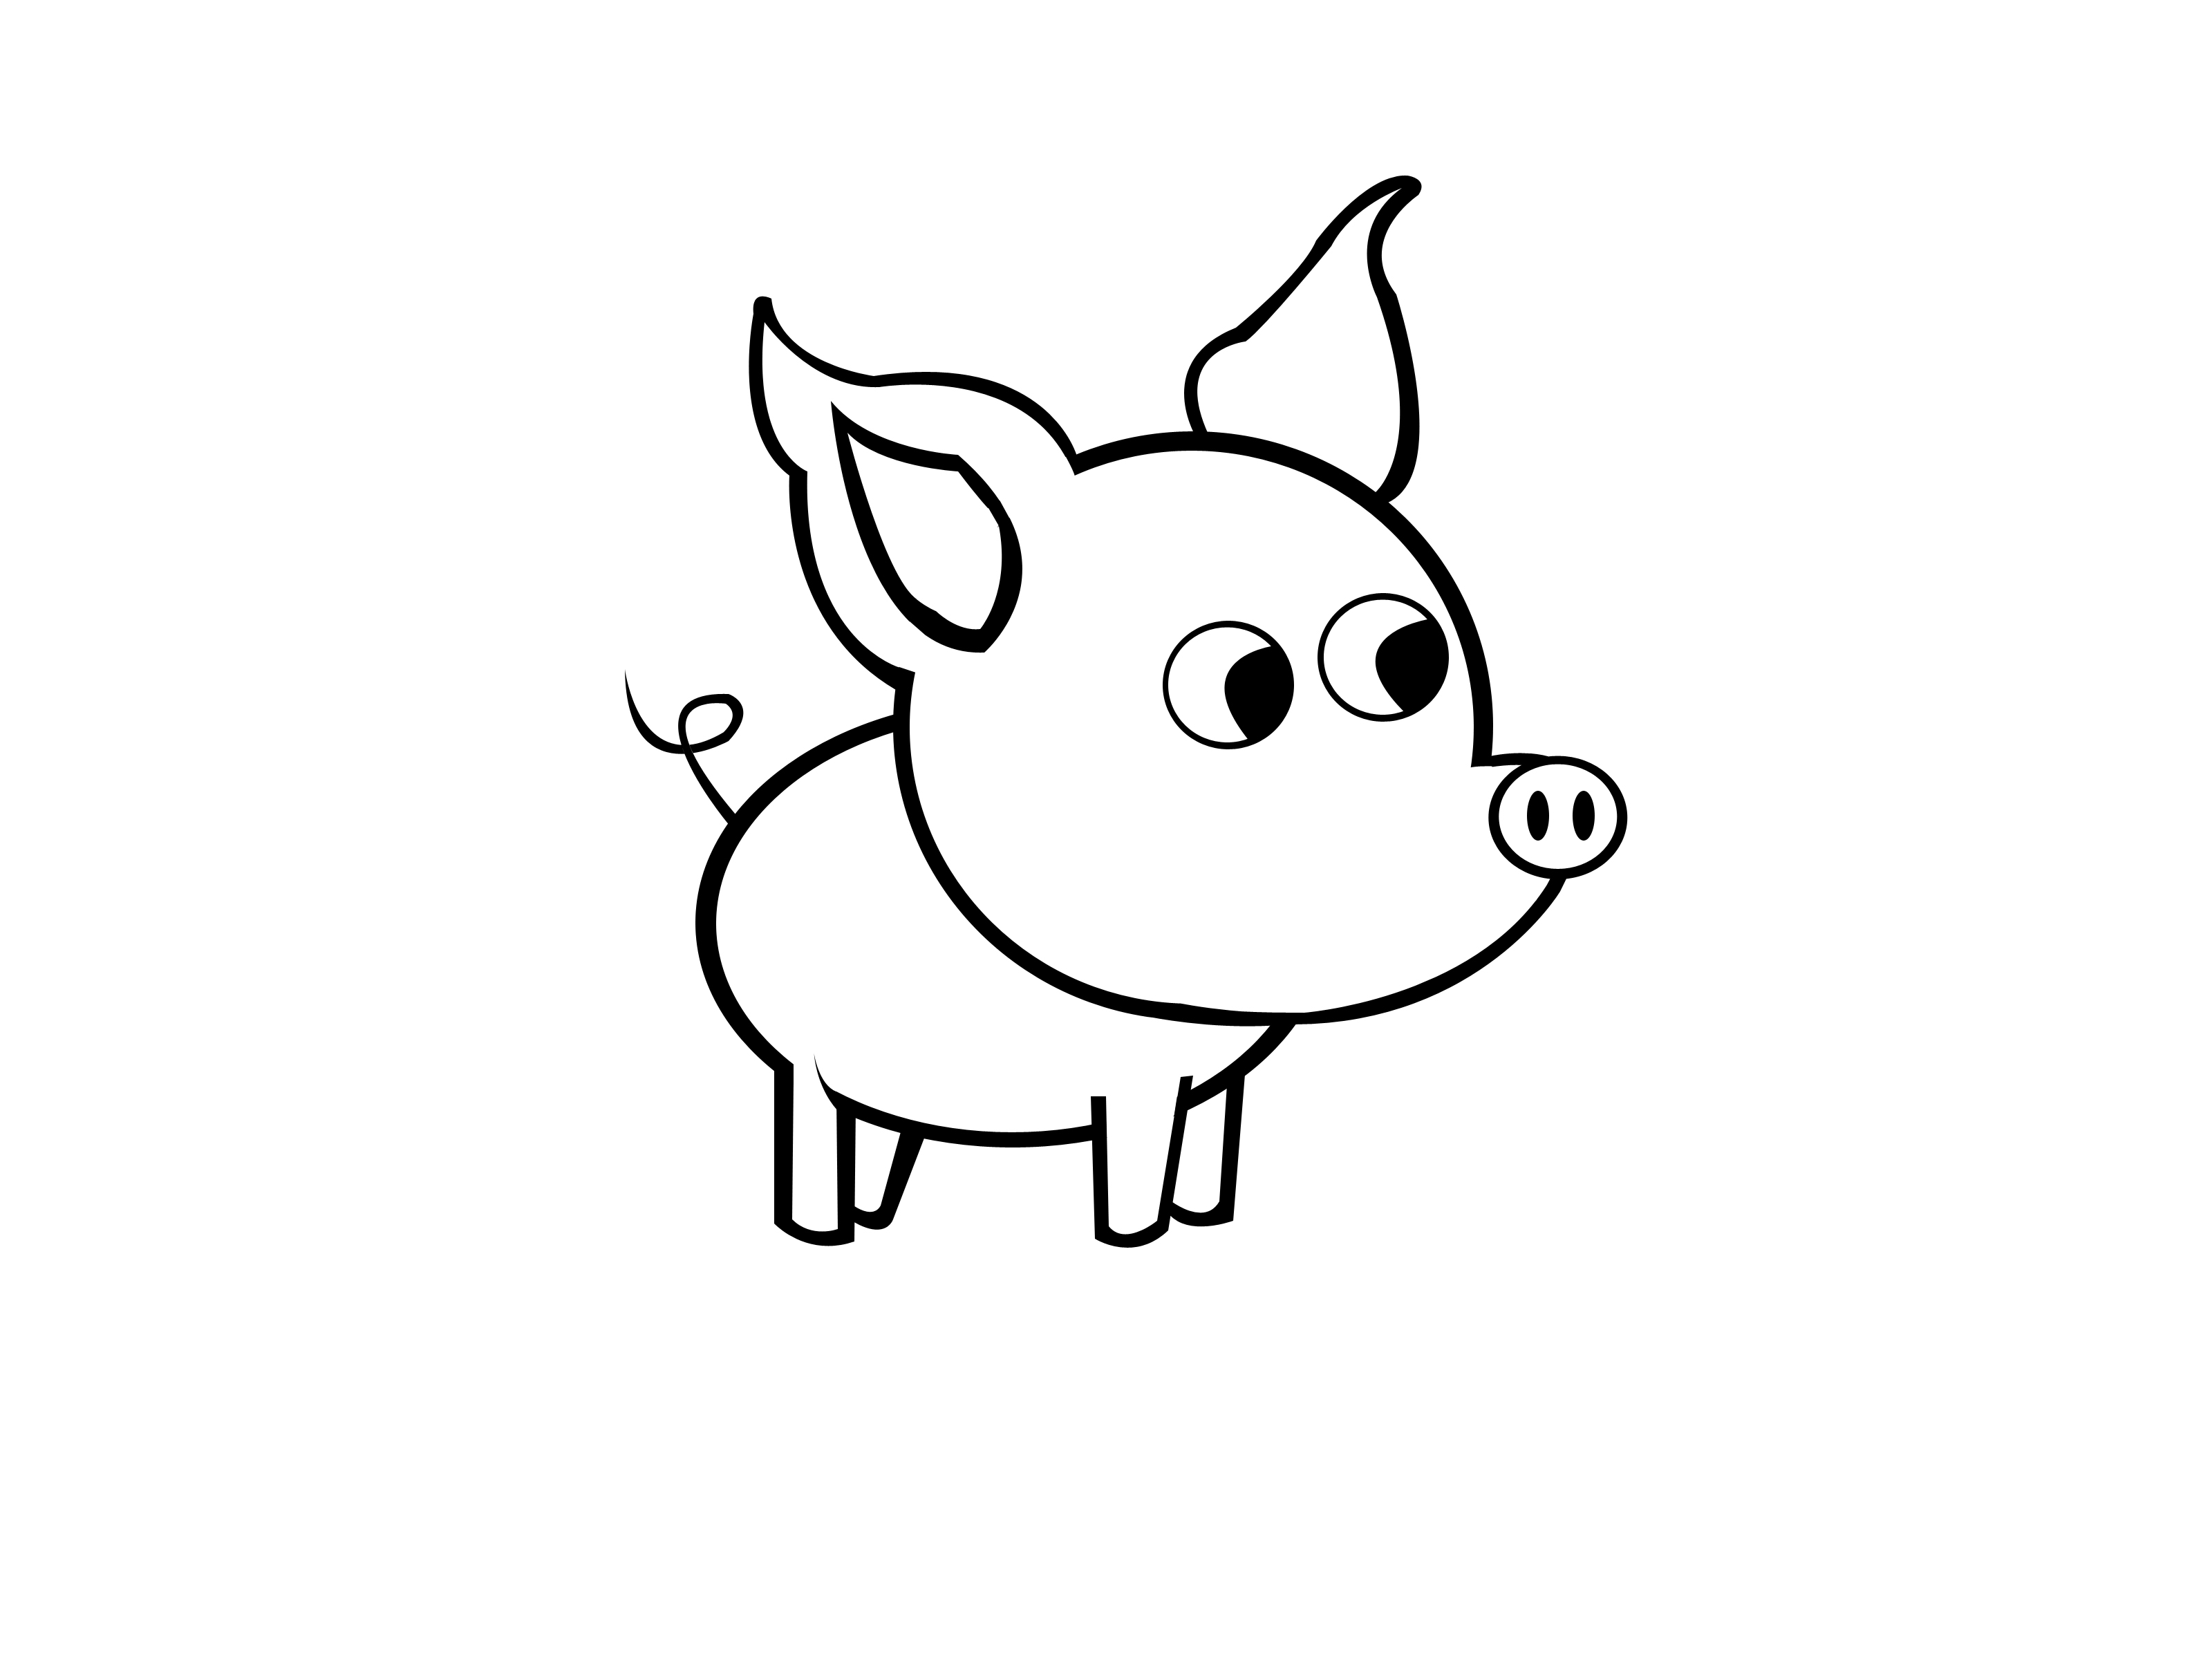 How to Draw a Simple Pig: 9 Steps (with Pictures) - wikiHow